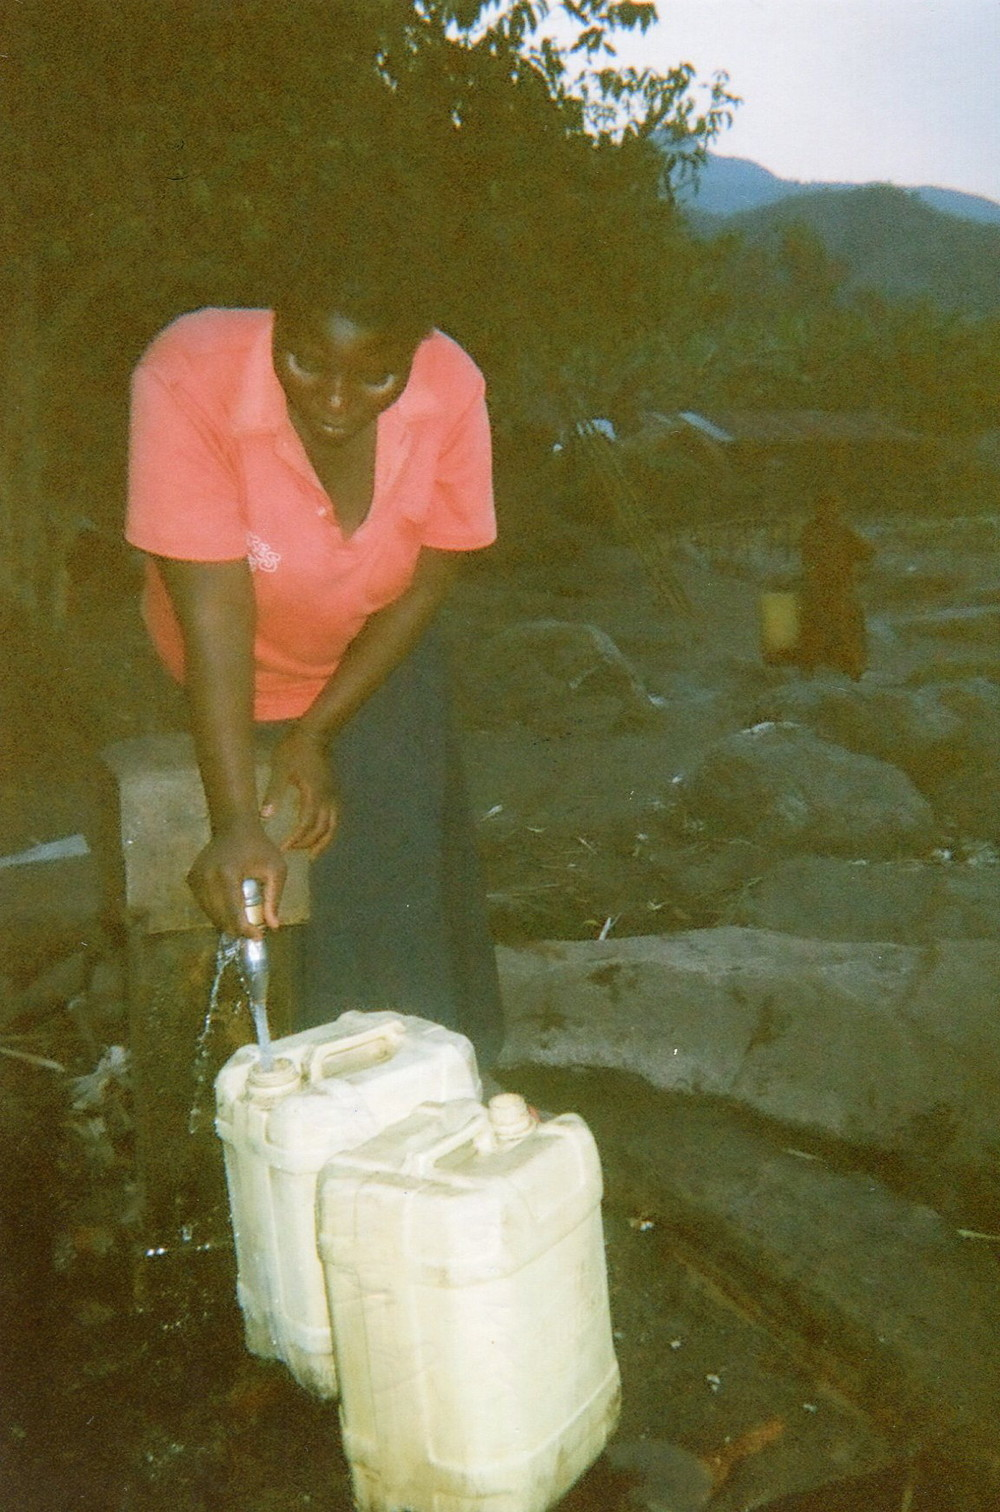 Here I am collecting water from the tap to take to the forest to wash the dishes and for drinking.